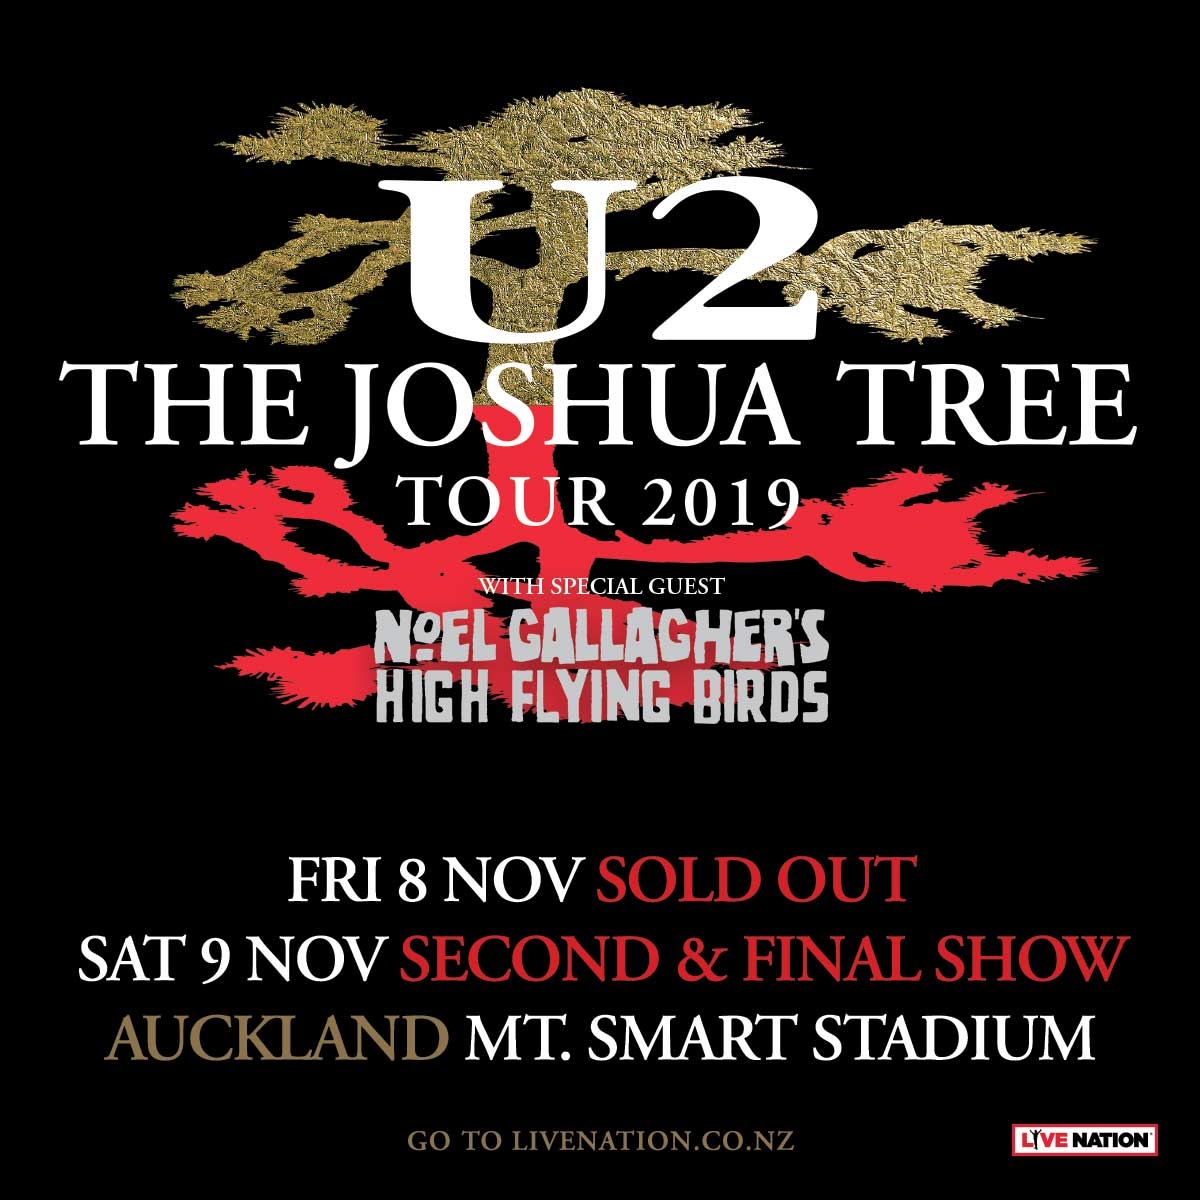 - The Joshua Tree Tour 2020  Soldier Field  June 3 U2 announce second Auckland date for the Joshua Tree Tour 2019